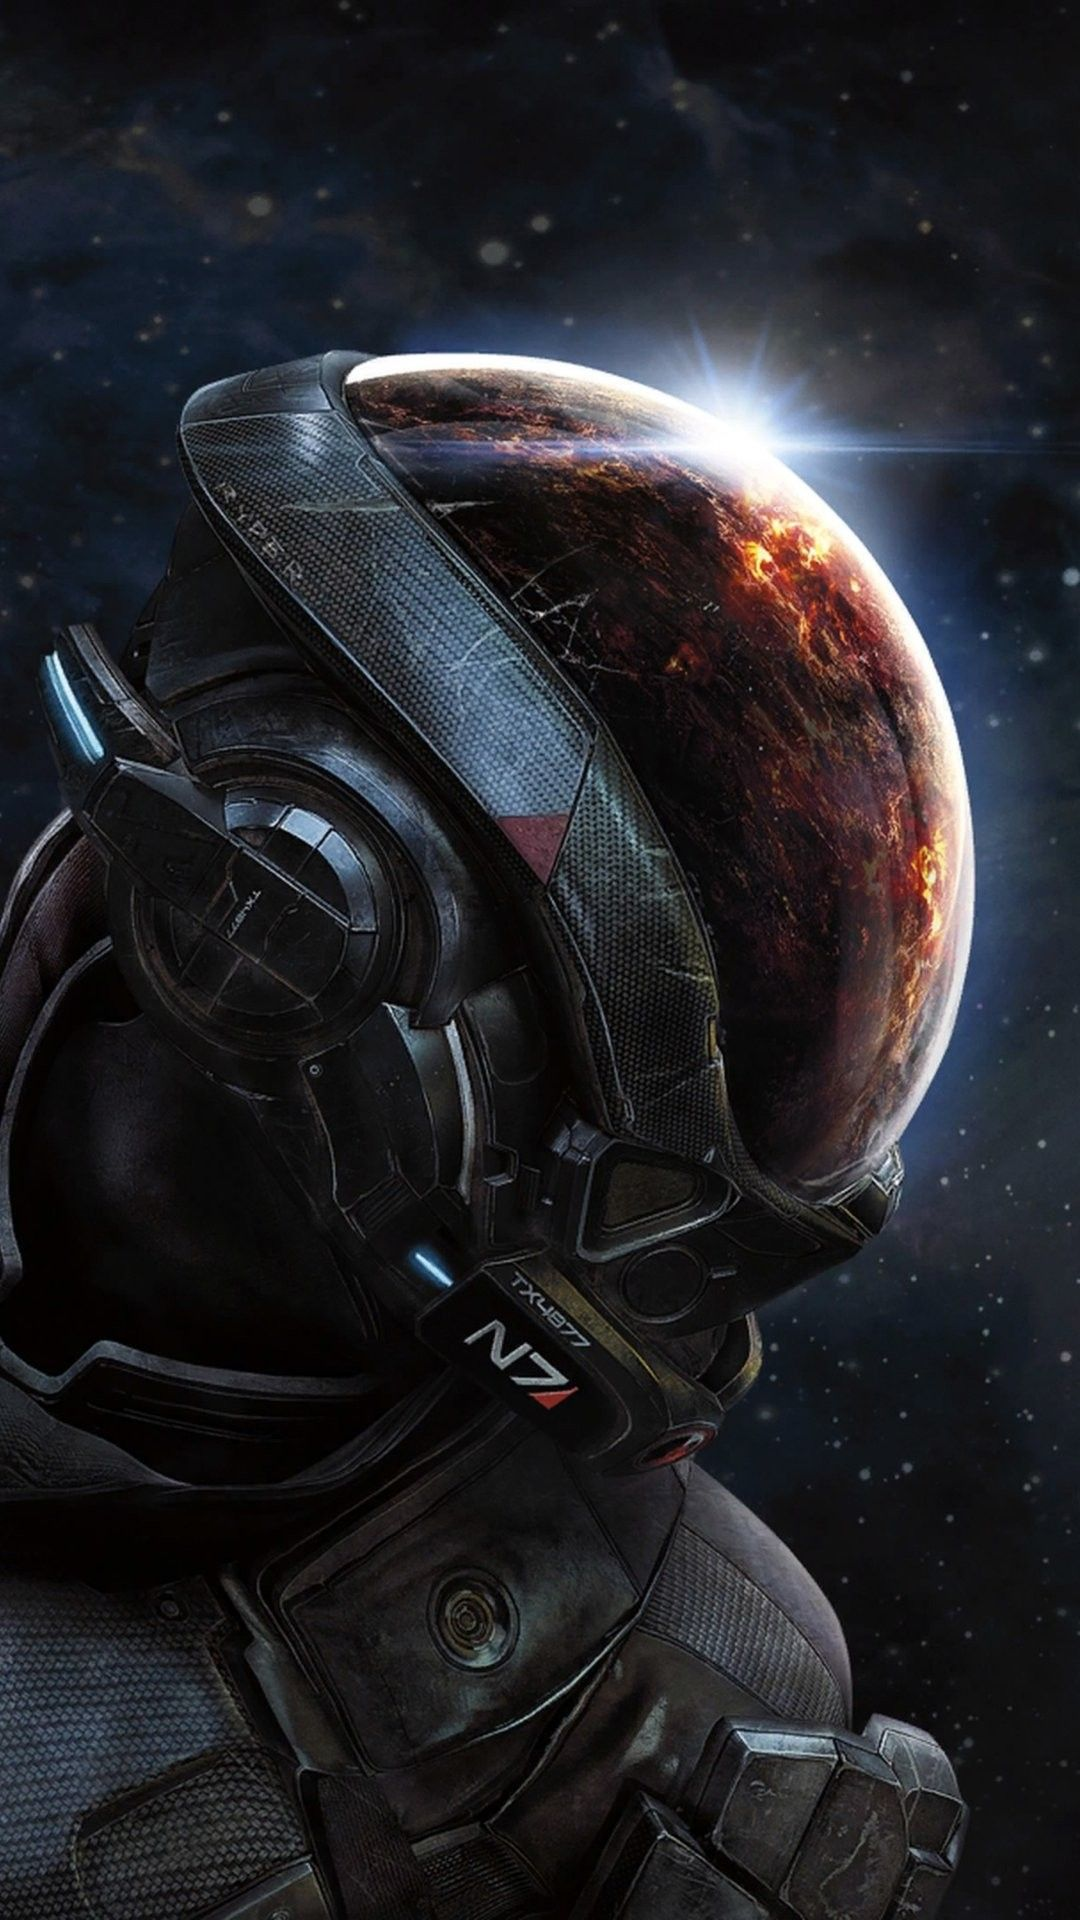 Pin By James Ivison On Mass Effect In 2019 Astronauts In